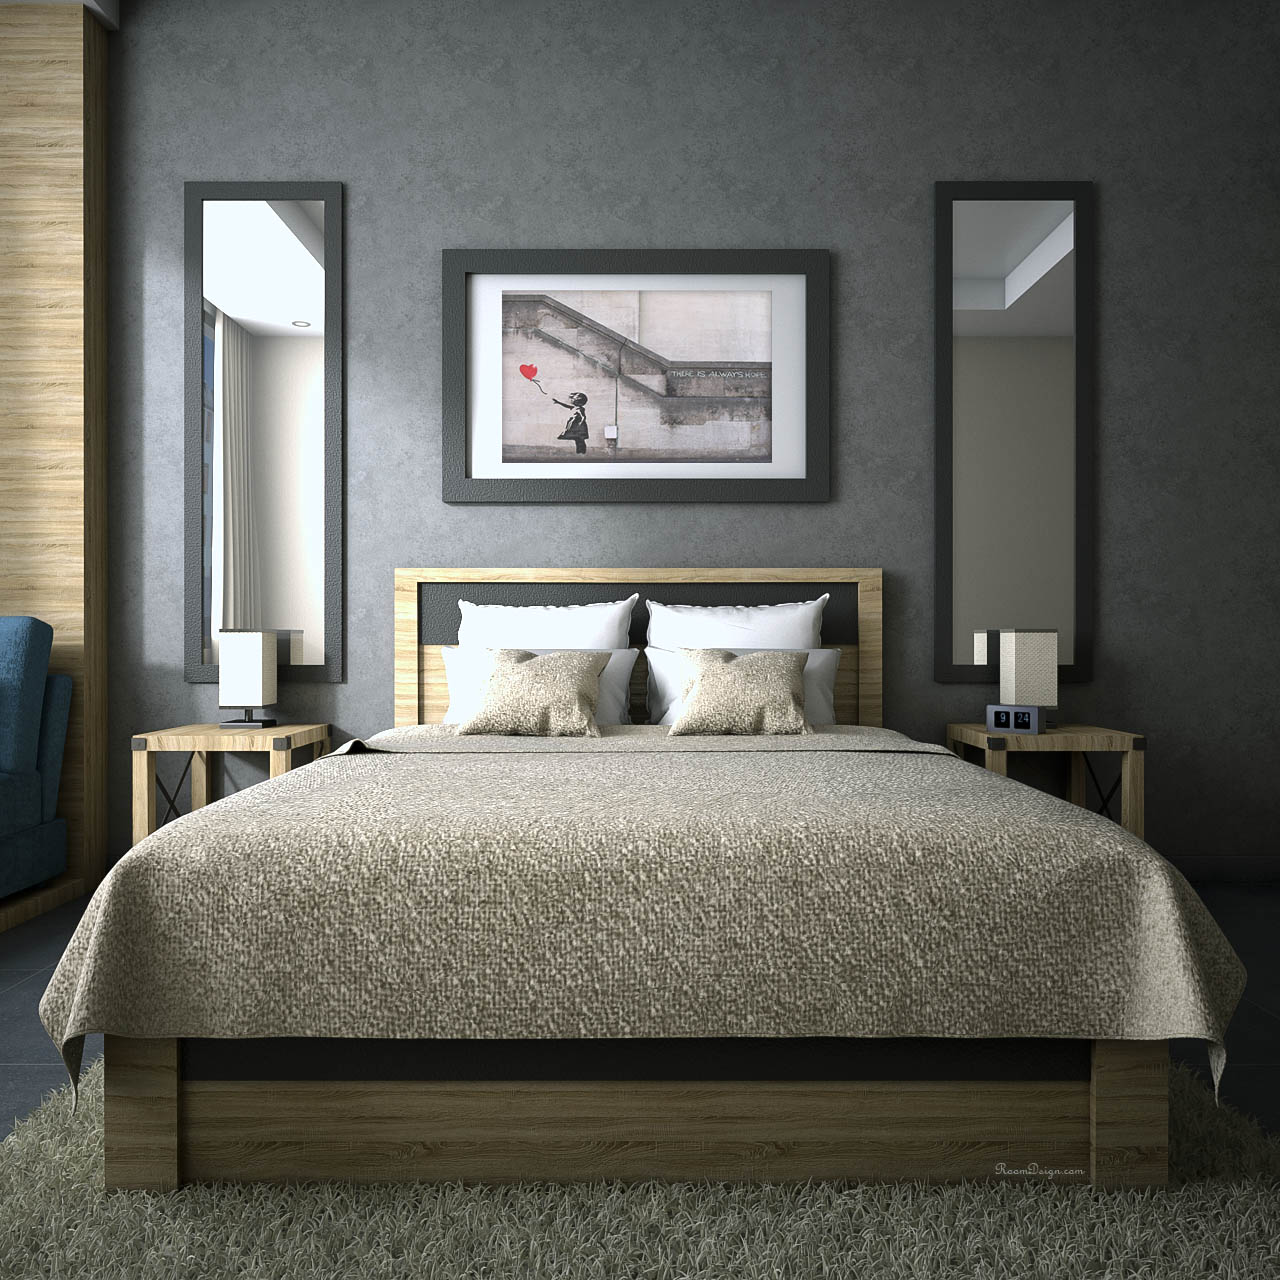 Oak bedroom furniture with grey walls